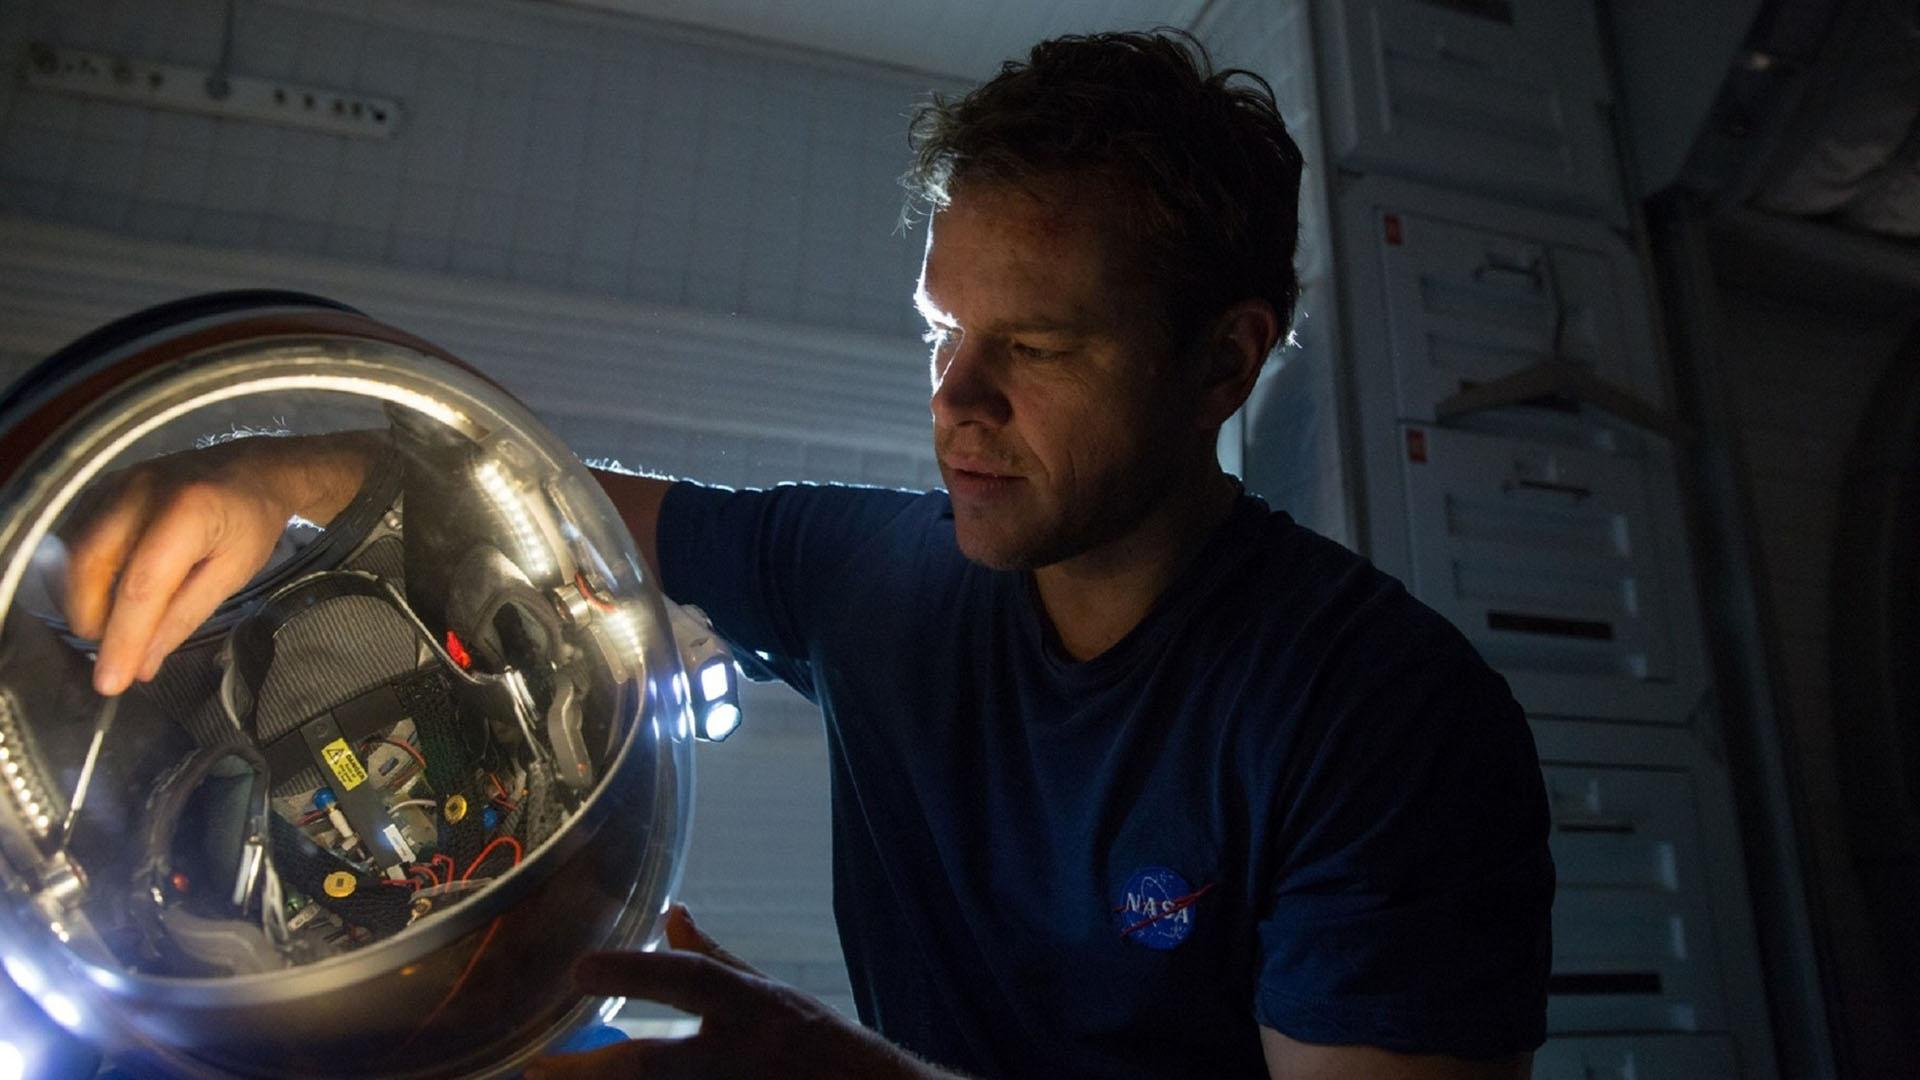 'The Martian' Tops Foreign Box Office With $45.2 Million